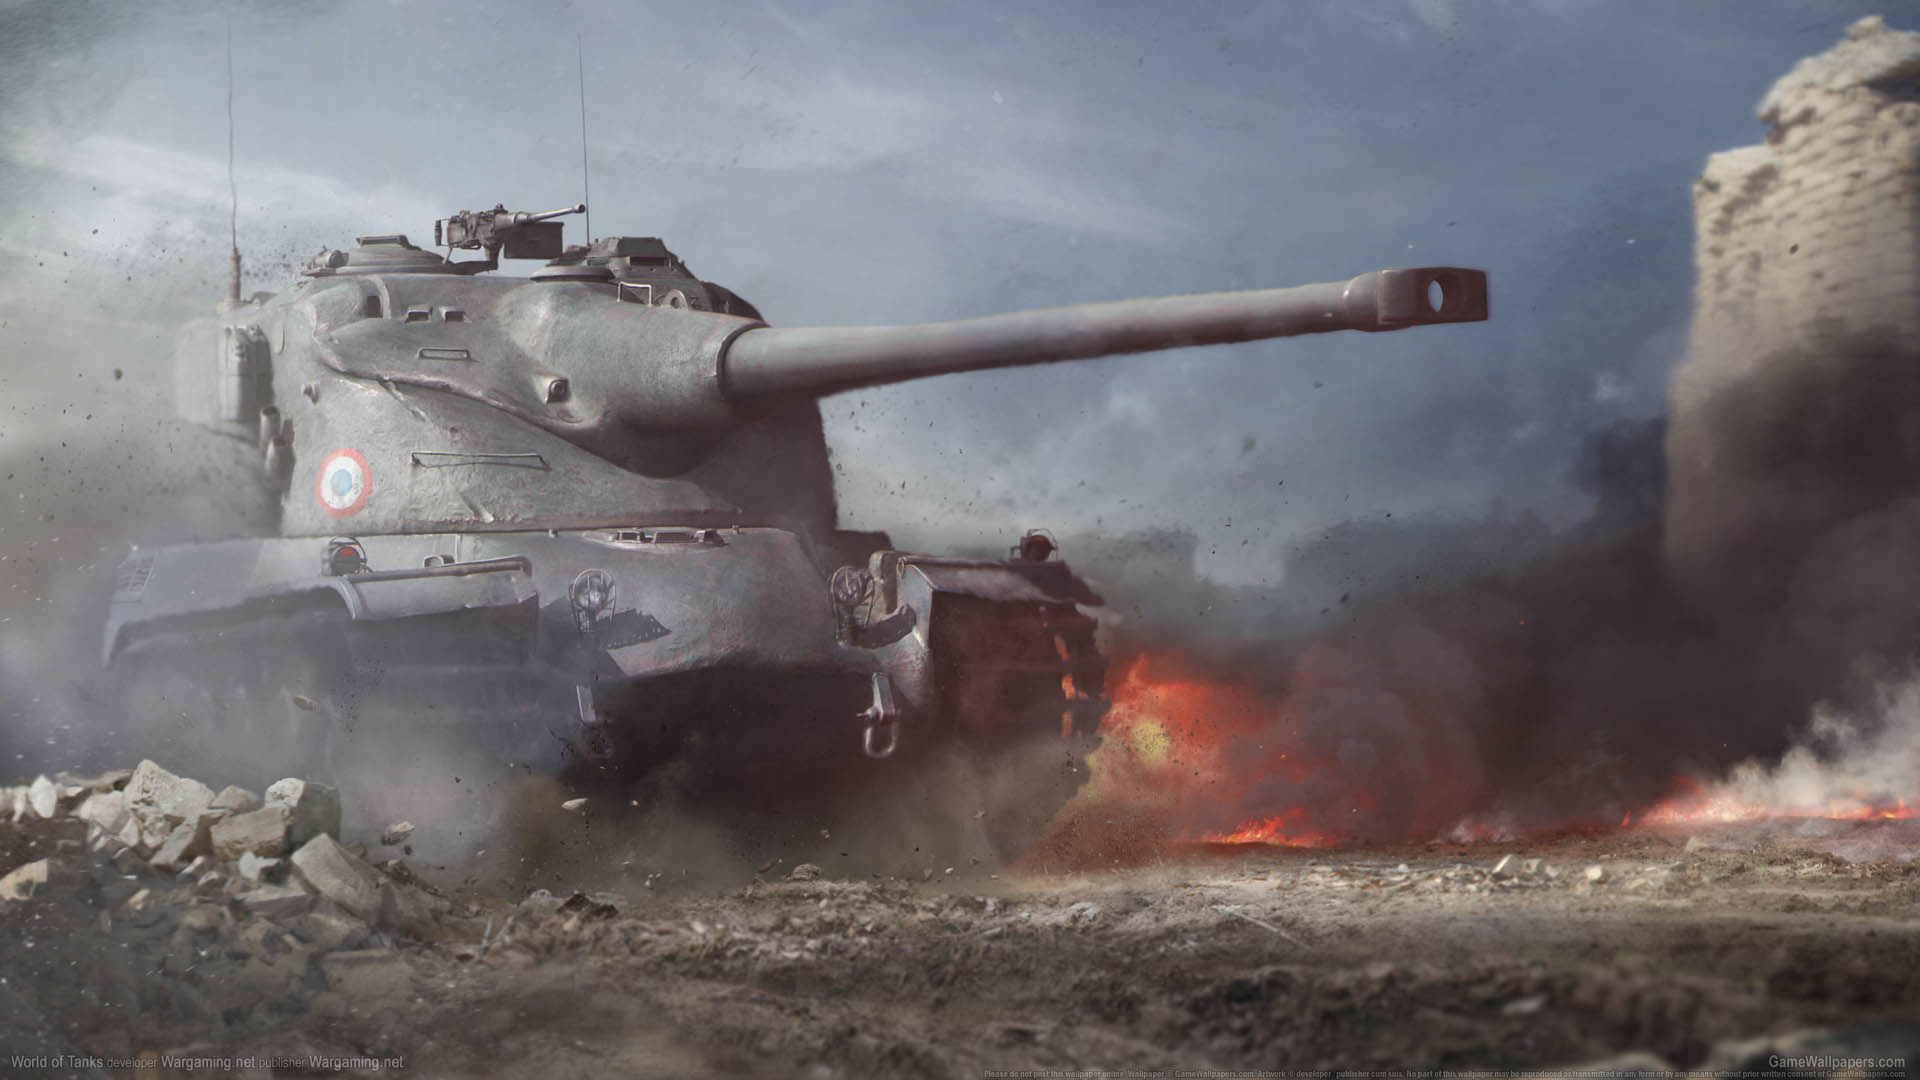 world of tanks wallpapers or desktop backgrounds